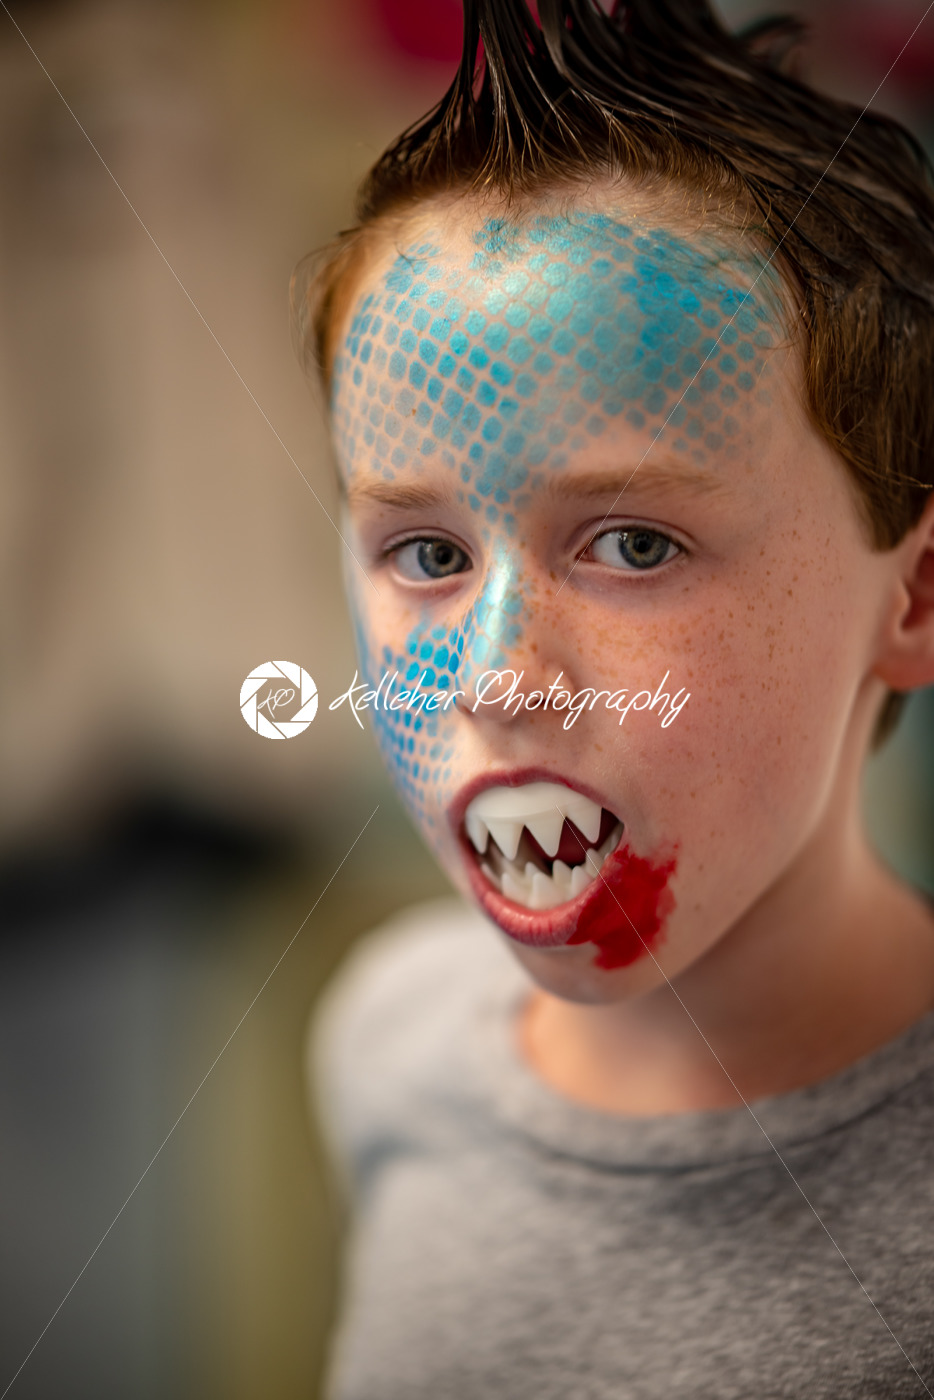 Boy with face painted like a shark - Kelleher Photography Store